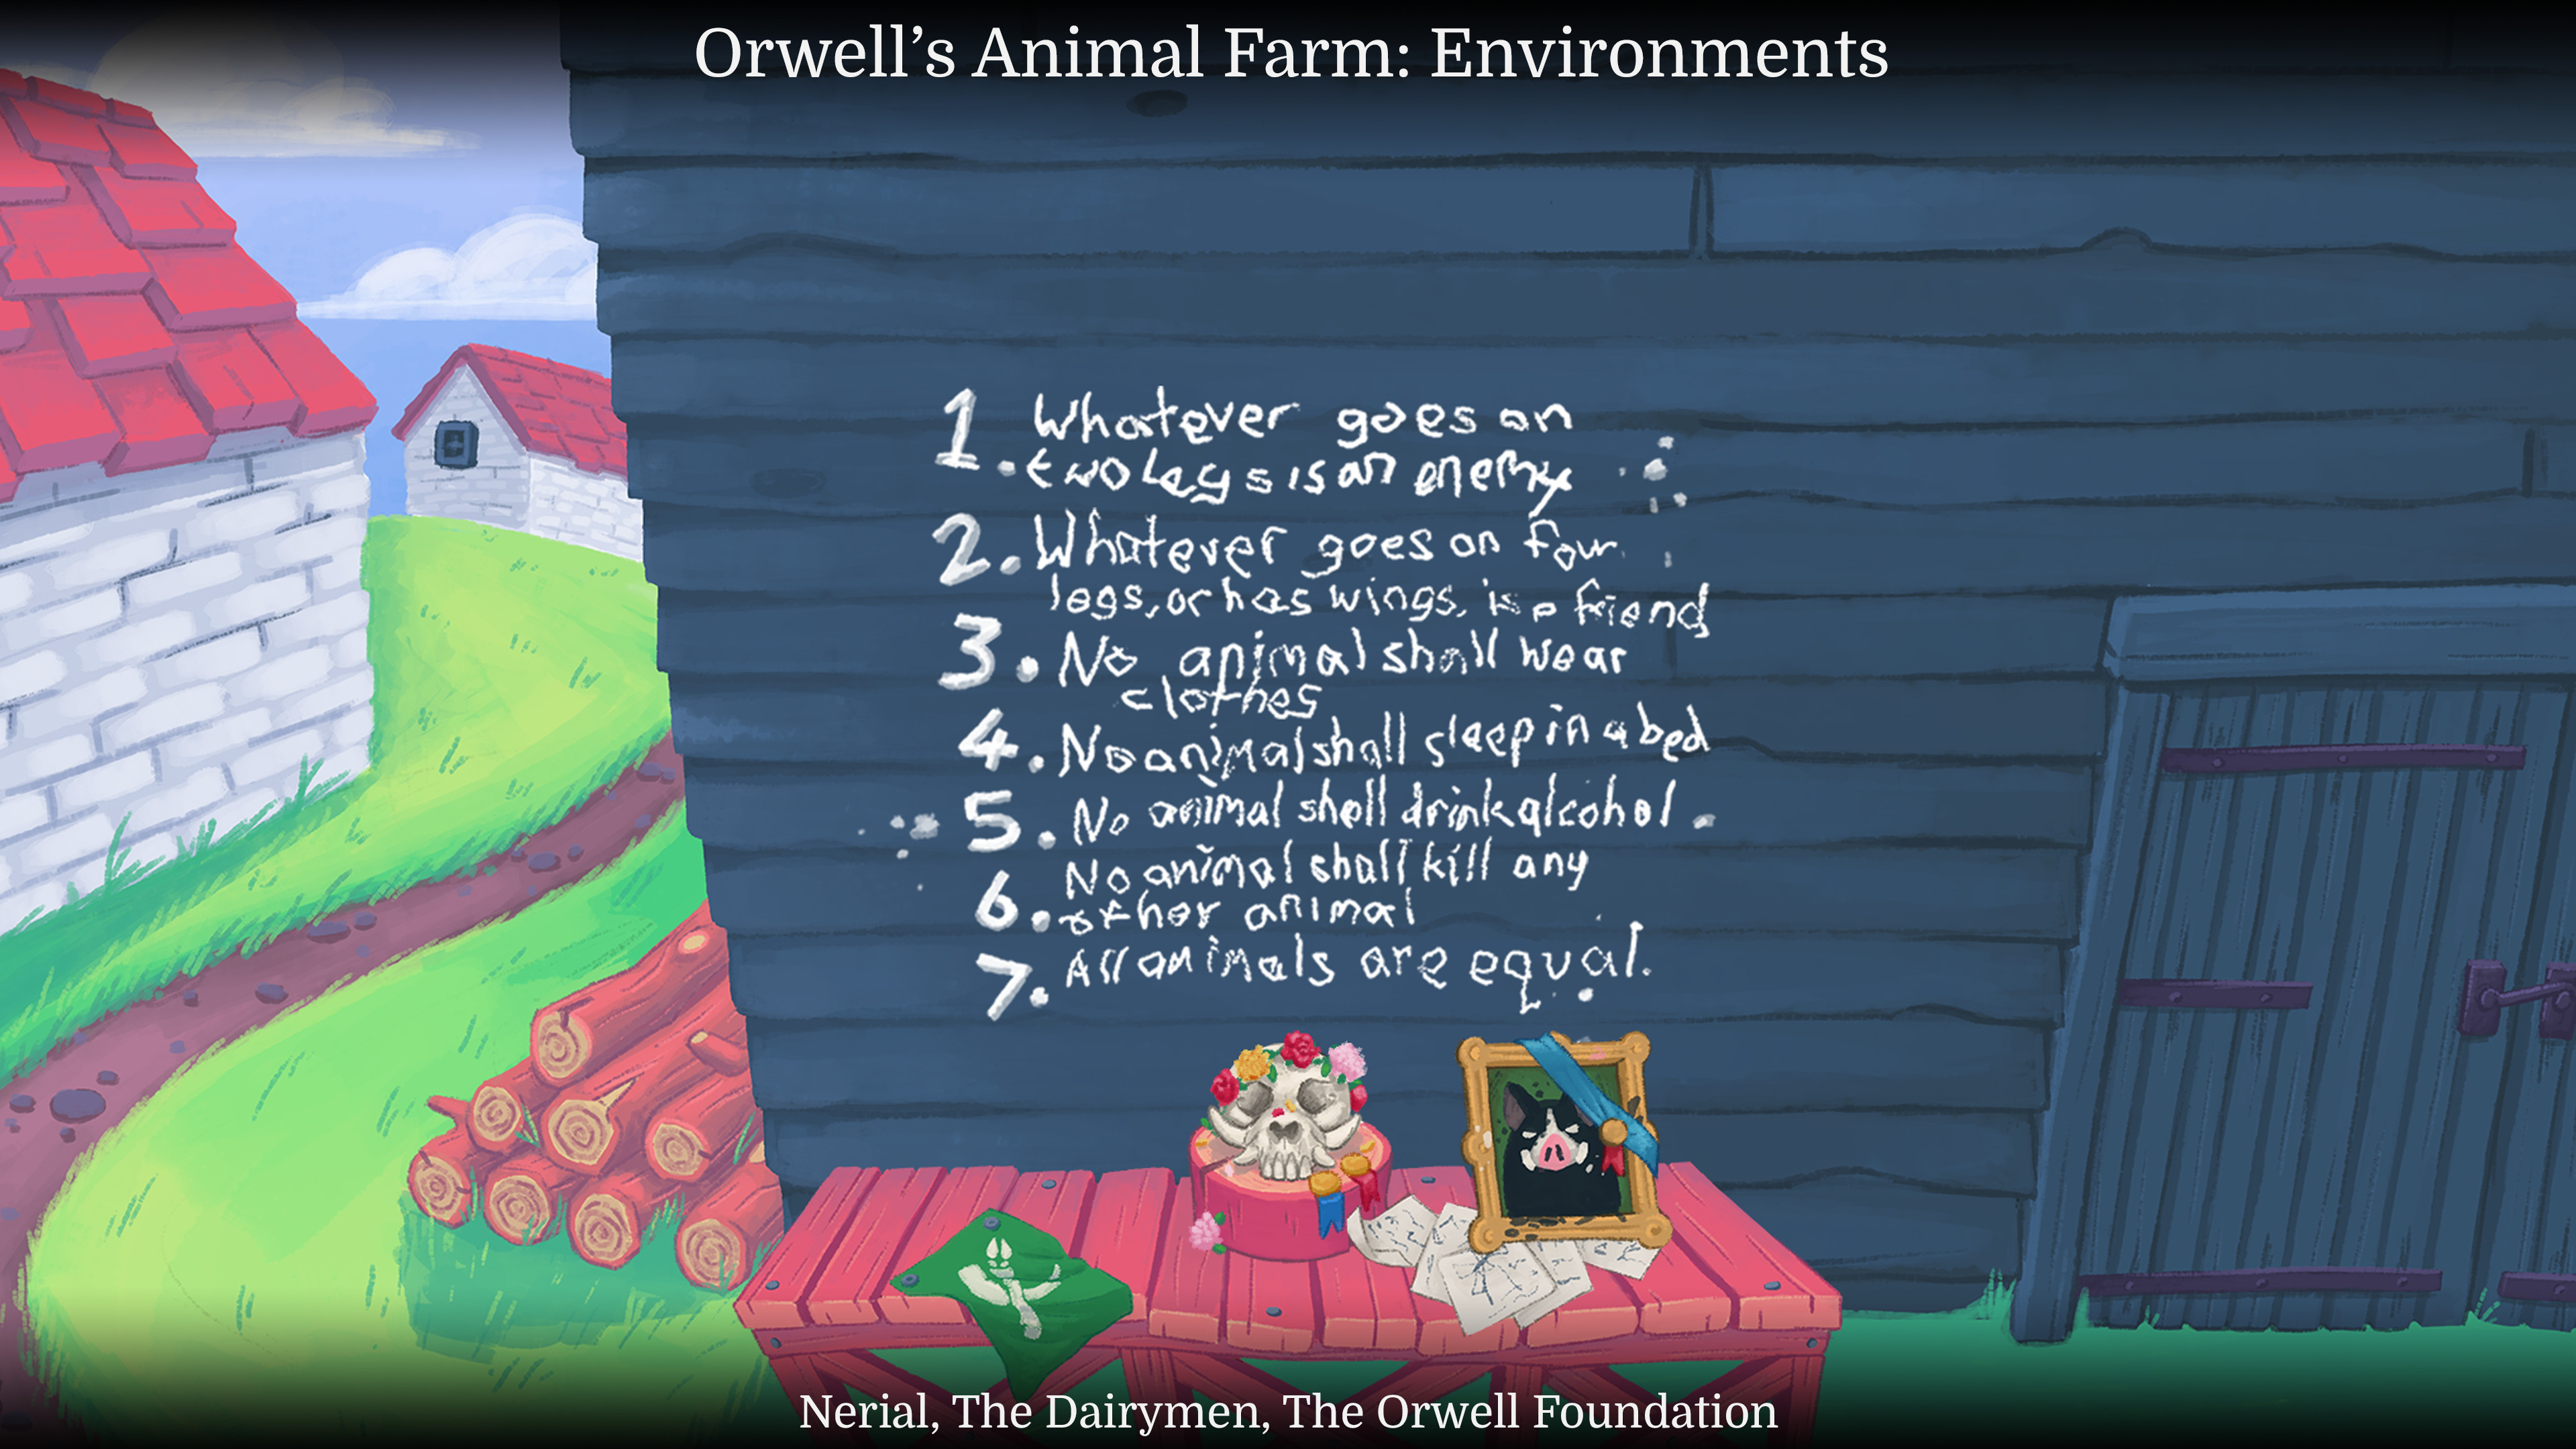 The barn wall and the laws of animalism.